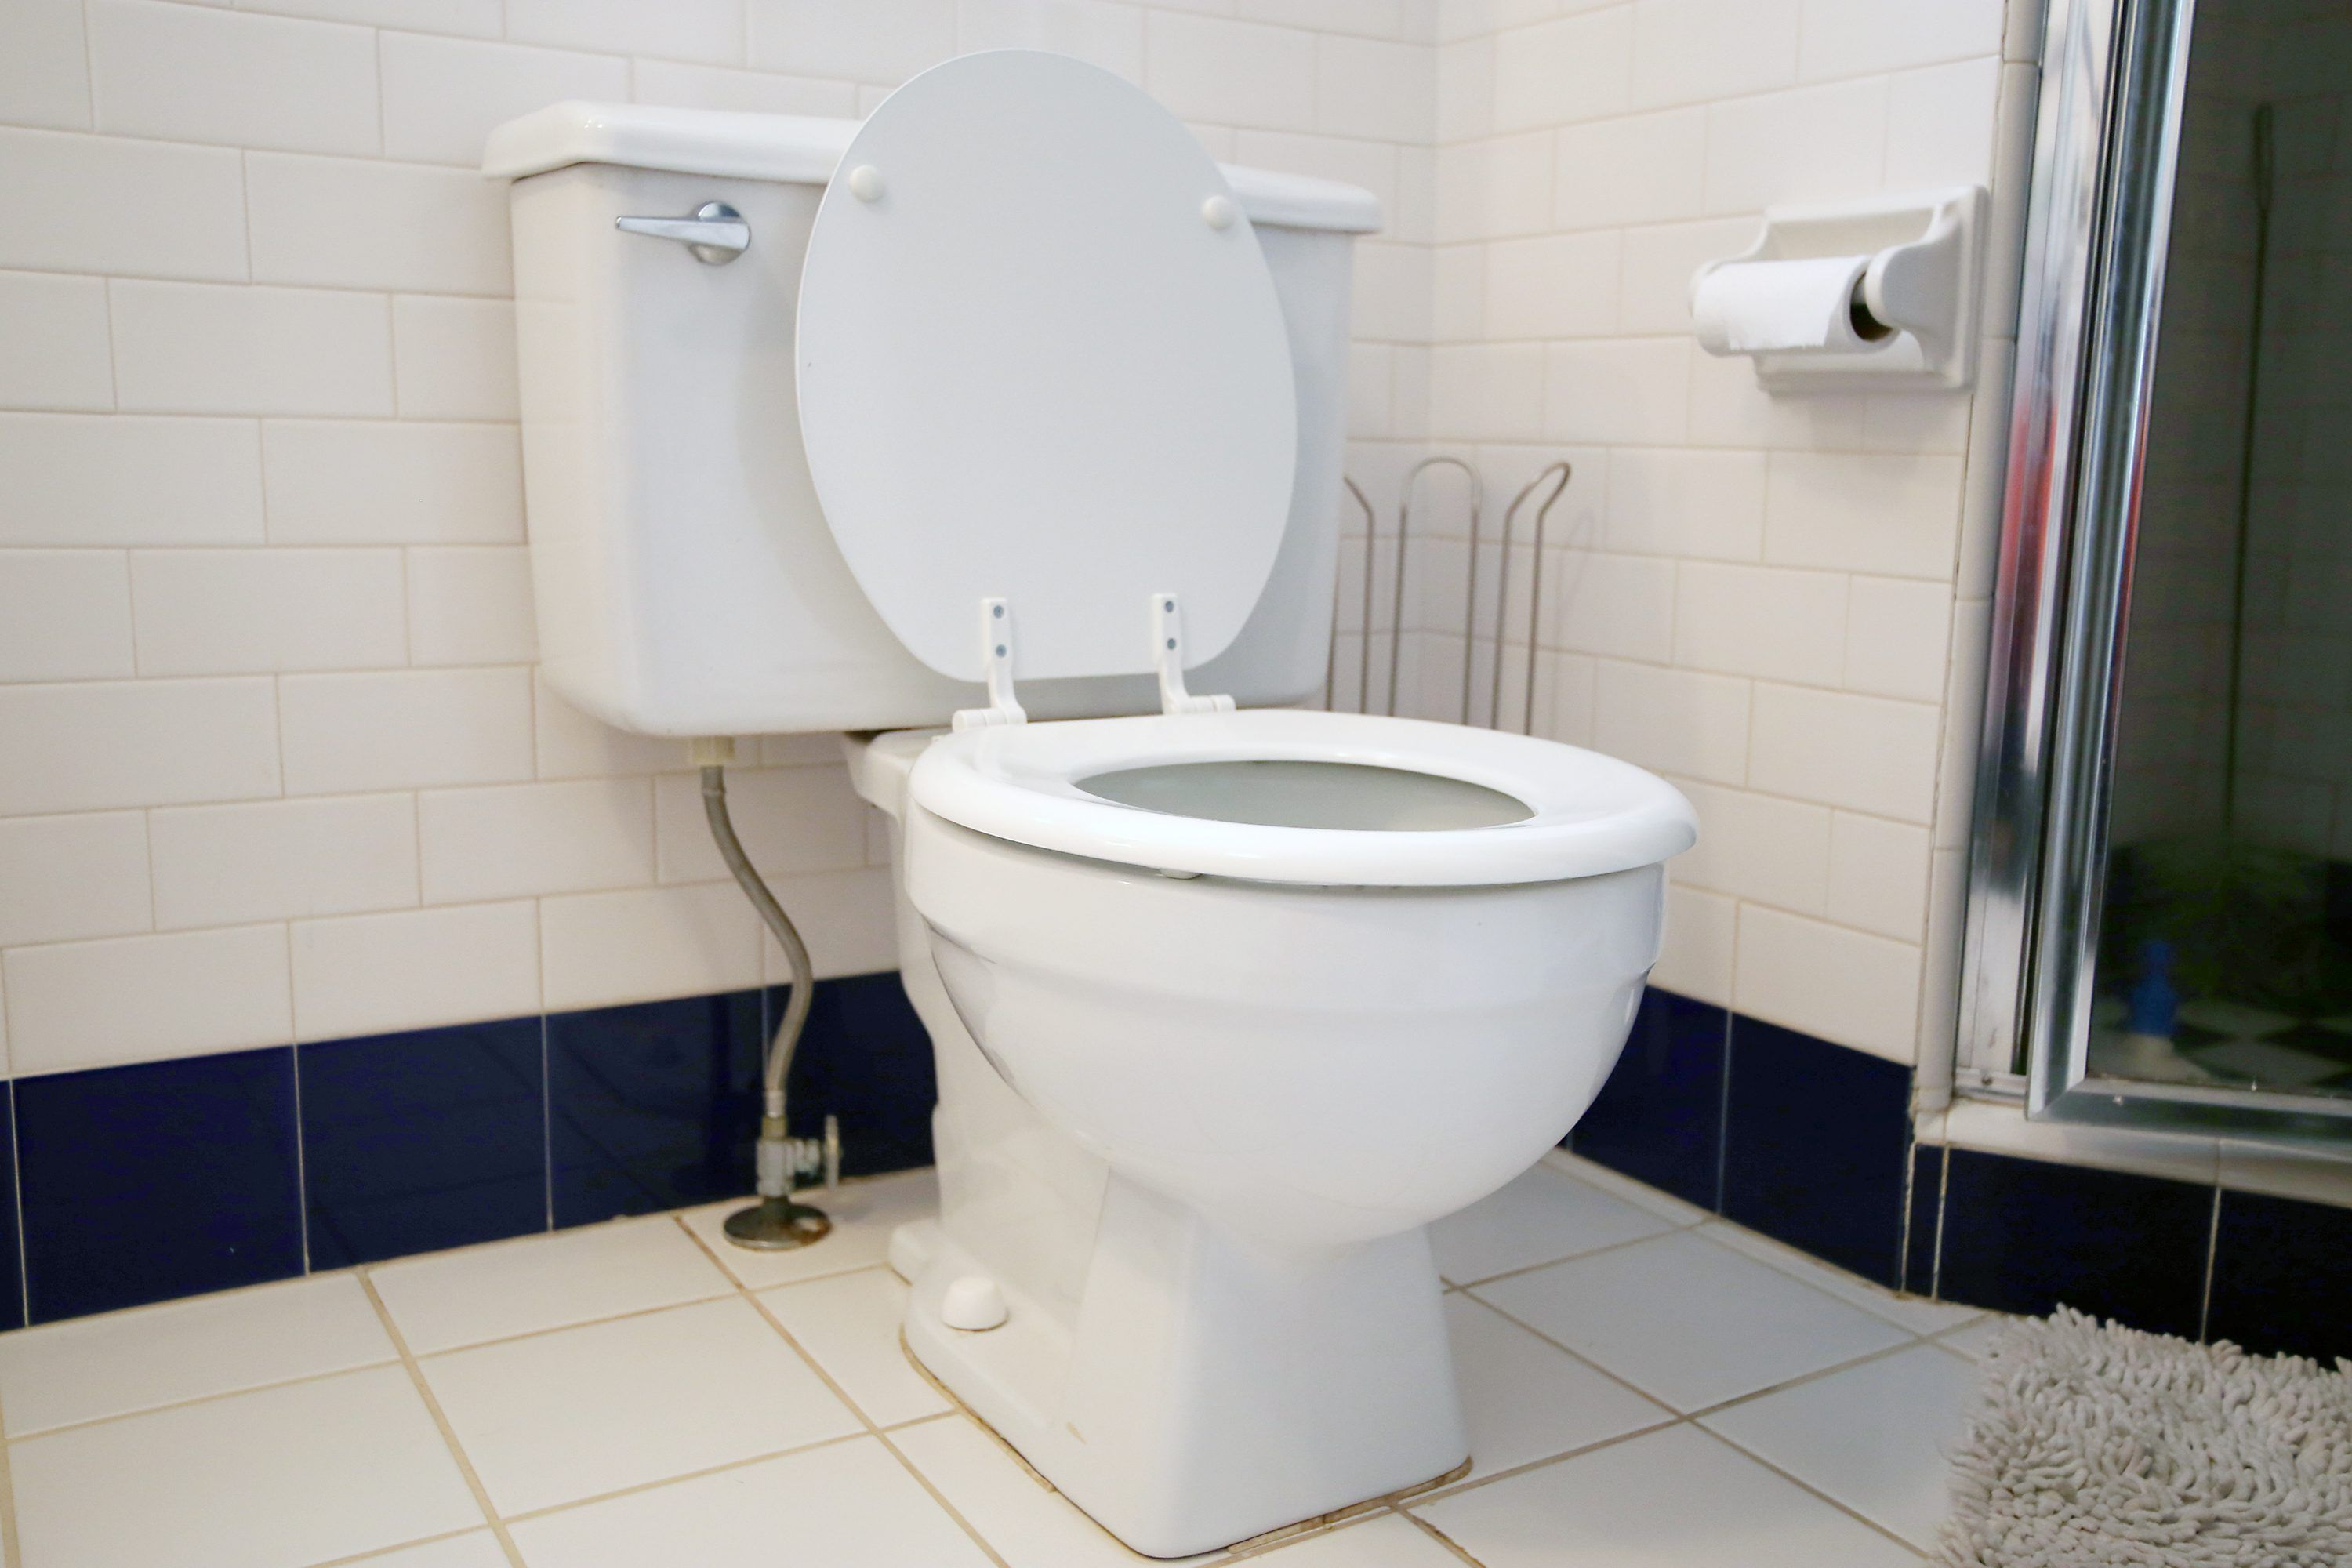 How To Get Rid Of A Sewer Smell In A Bathroom